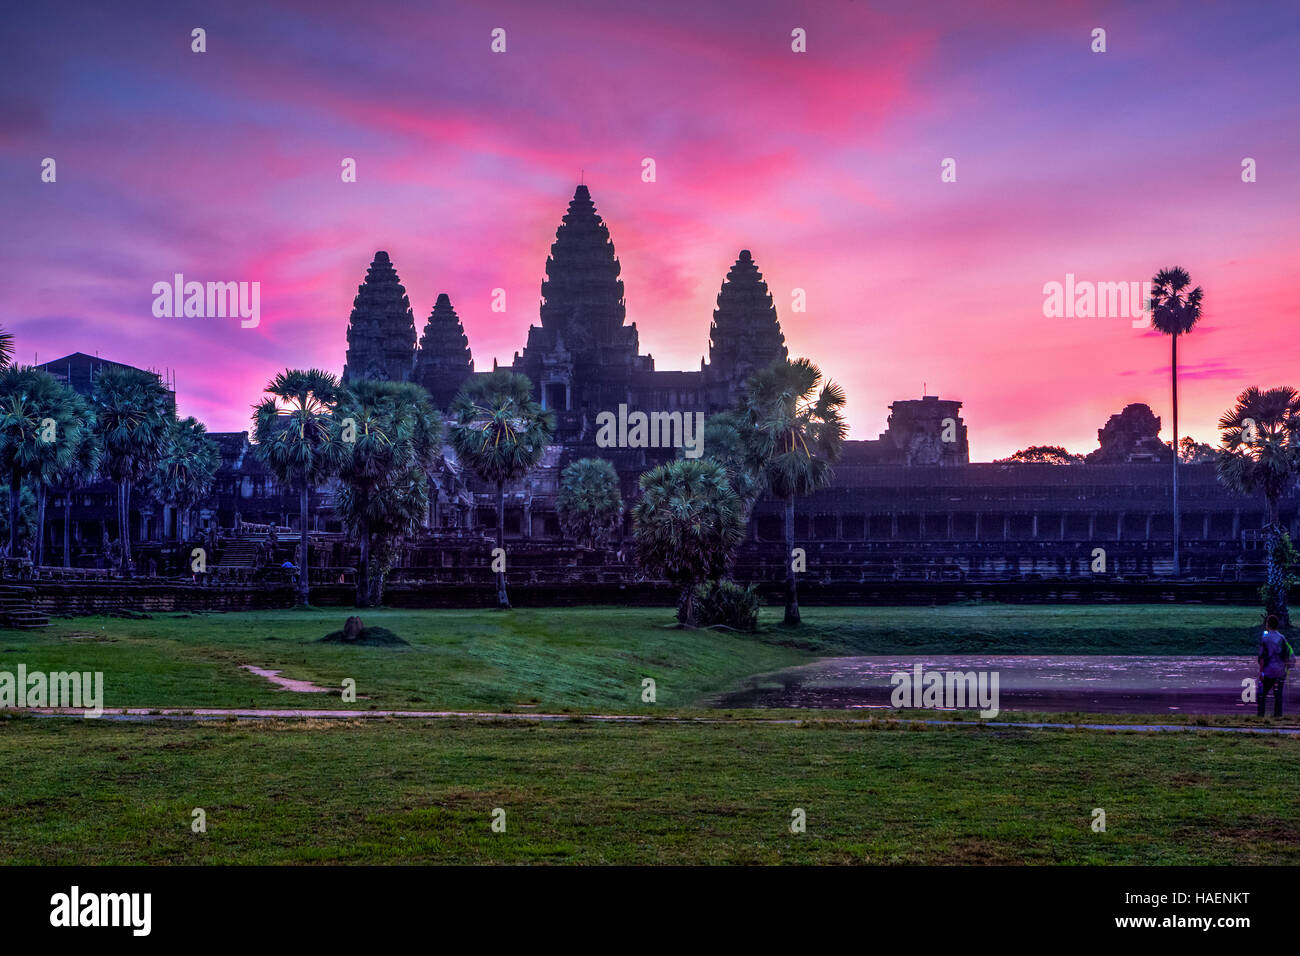 Vibrant, colourful sunrise at Angkor Wat, Kingdom of Cambodia. - Stock Image